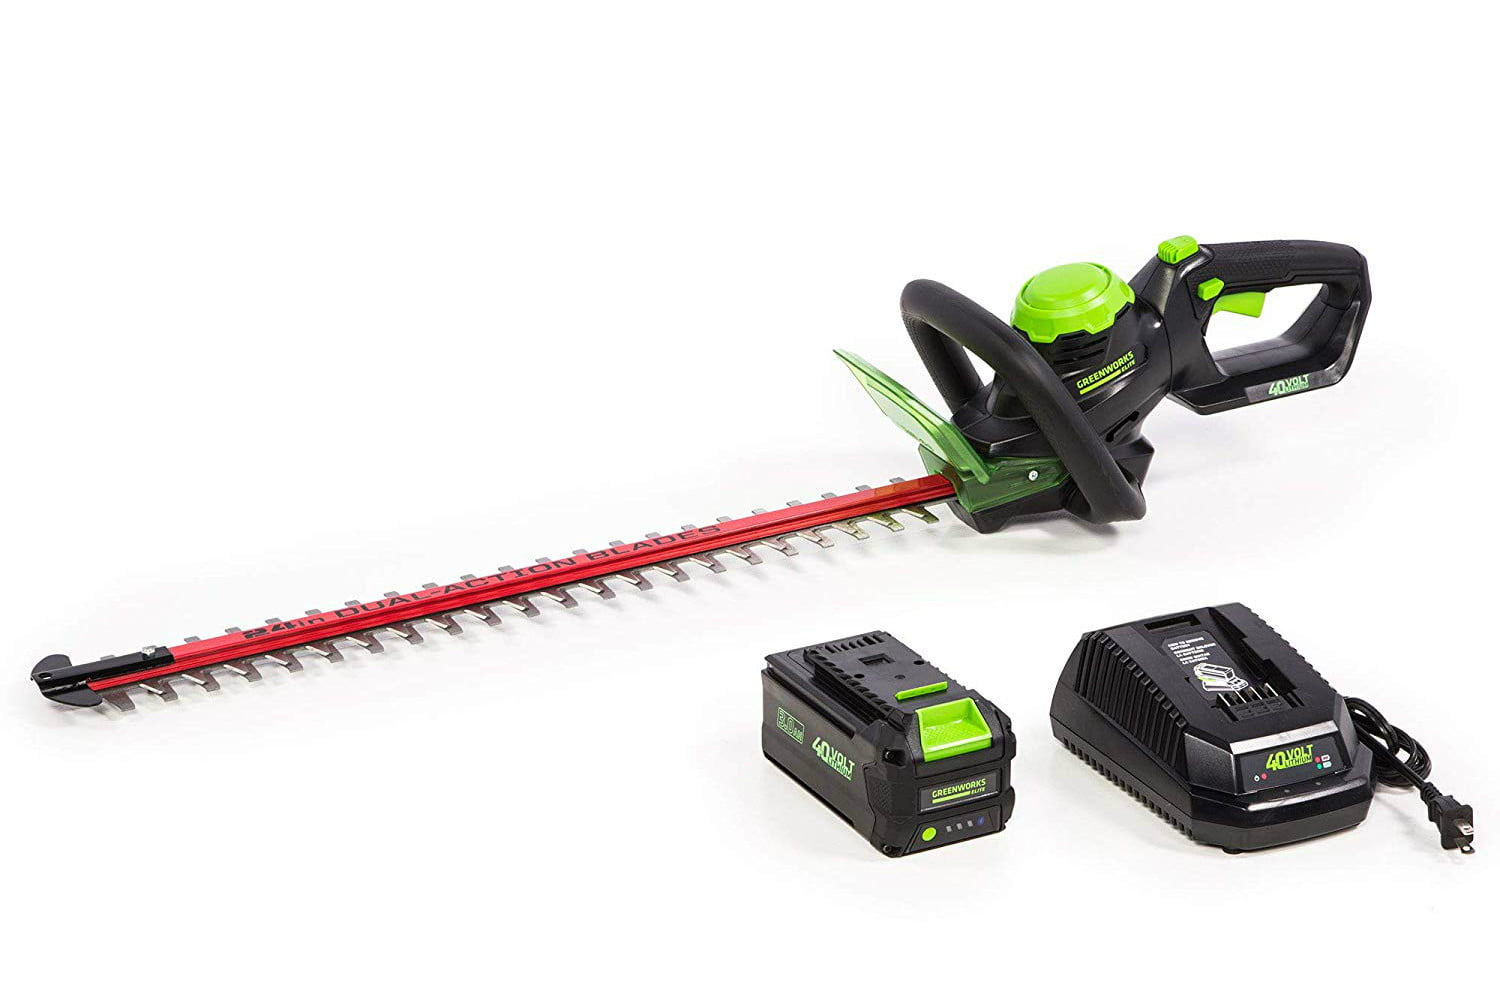 amazon deals on greenworks pressure washers and yard tools 24 inch 40v cordless hedge trimmer 1